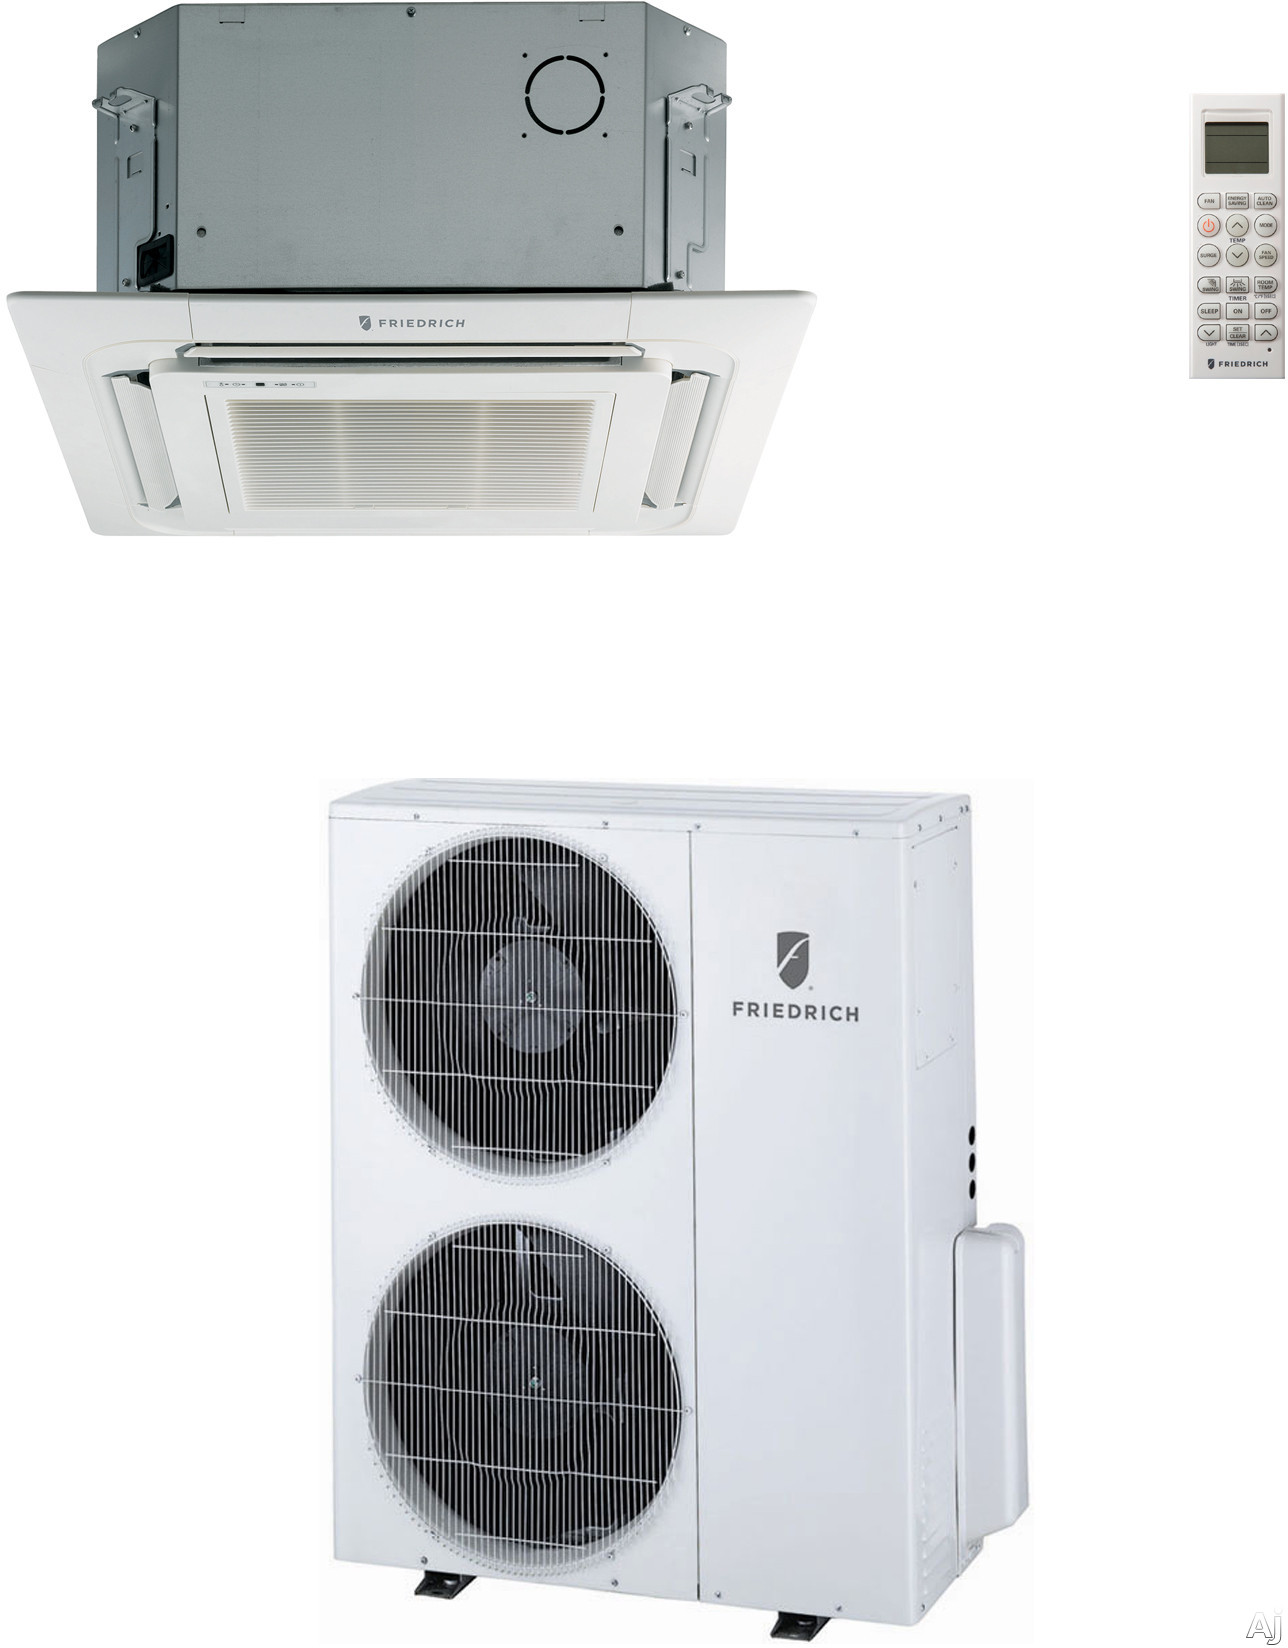 Friedrich C36YJ 36,000 BTU Single Zone Ceiling Cassette Ductless Split System with 40,000 BTU Heat Pump, 13.5 EER, 19.0 SEER and R410A Refrigerant (MC36Y3J Indoor/MR36UY3J Outdoor) C36YJ